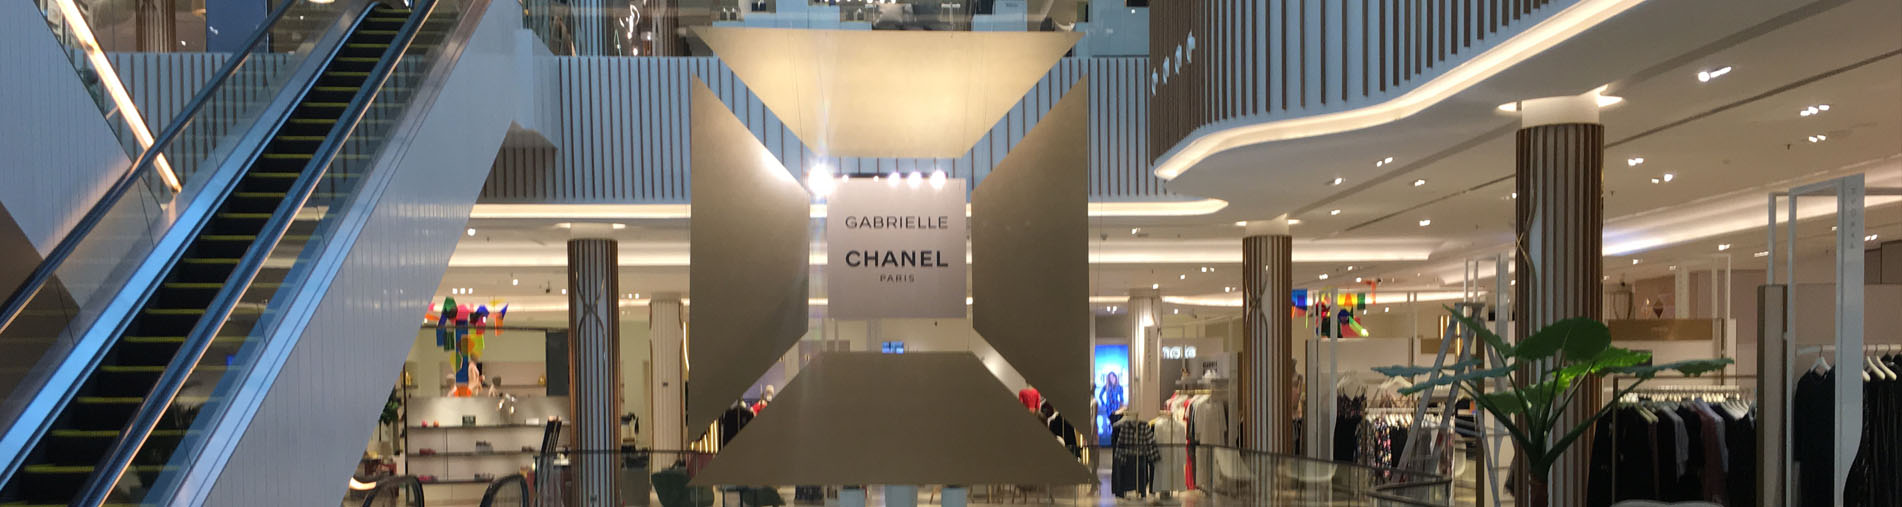 Channel Display at Festival City Mall